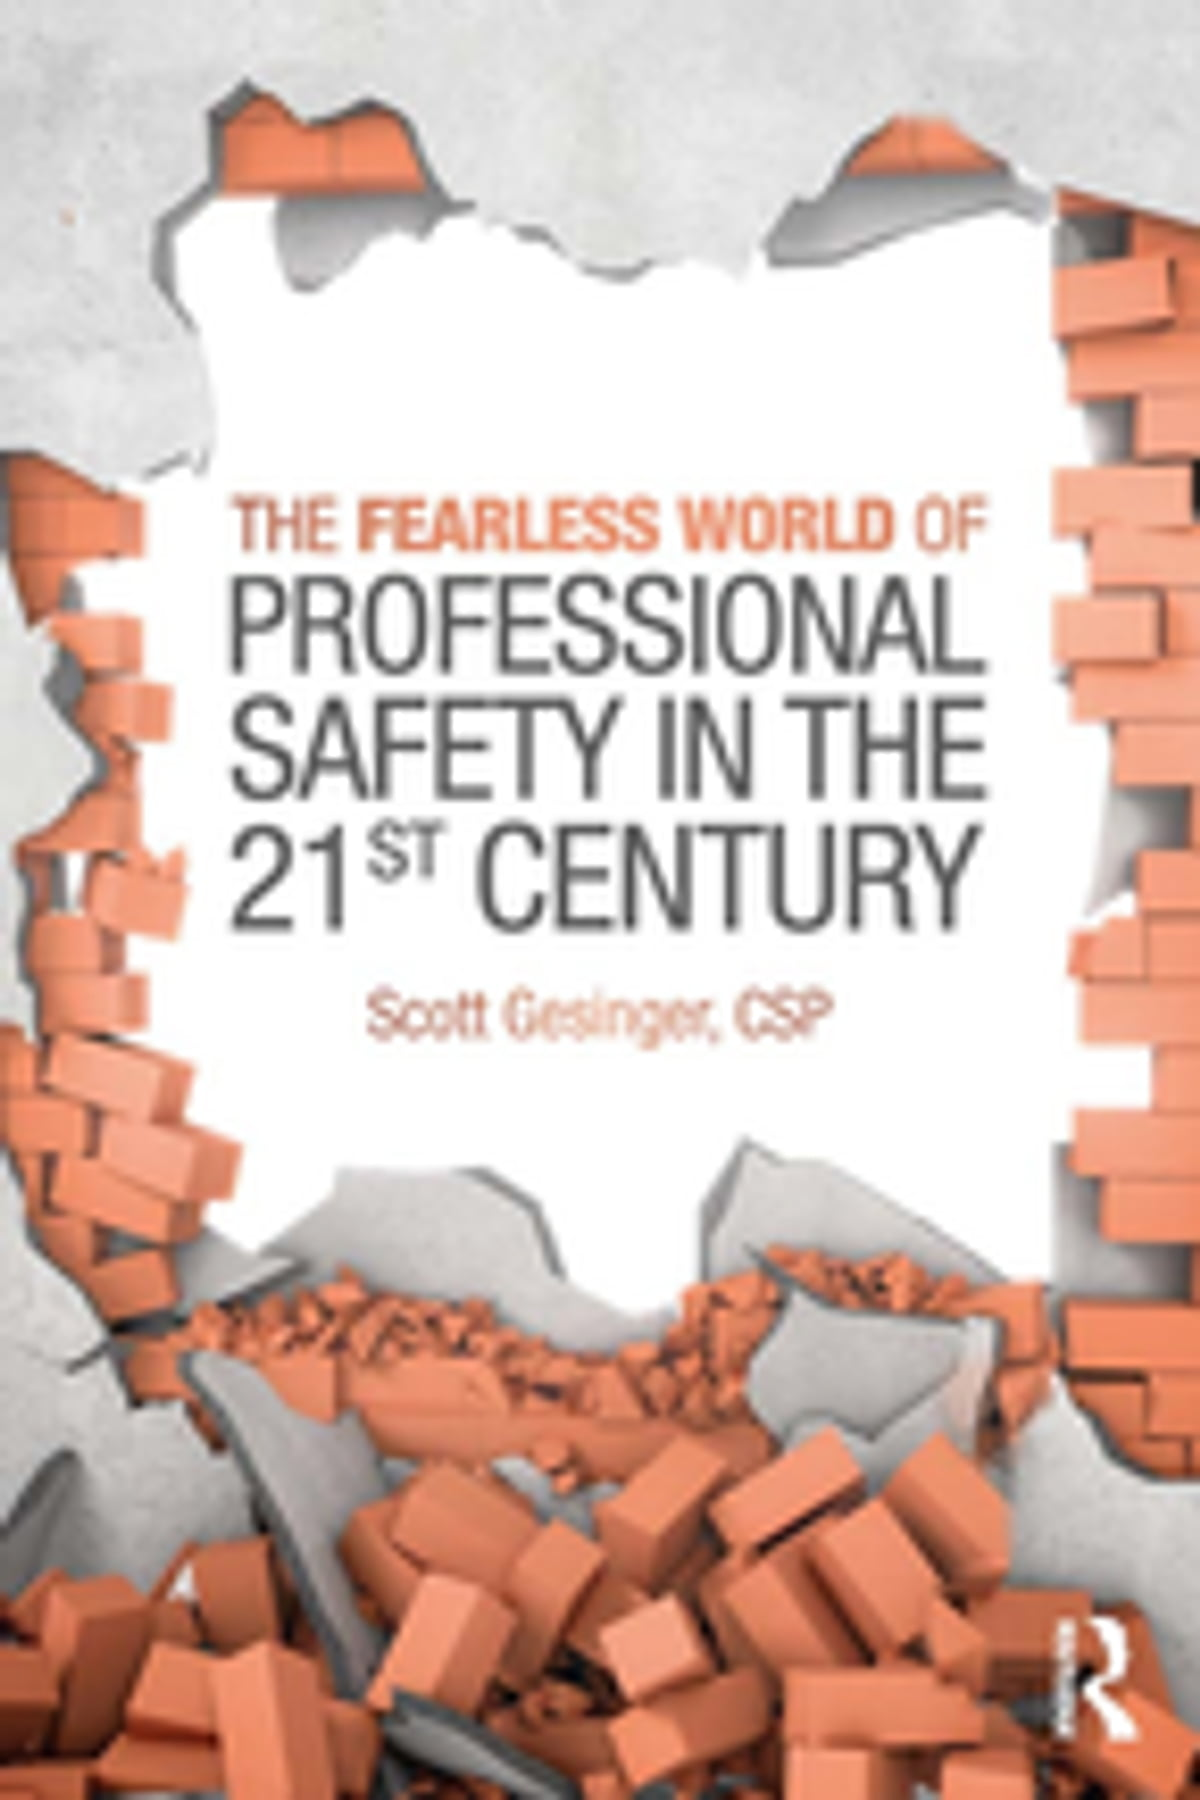 The fearless world of professional safety in the 21st century the fearless world of professional safety in the 21st century ebook by scott gesinger 9781351713535 rakuten kobo fandeluxe Image collections